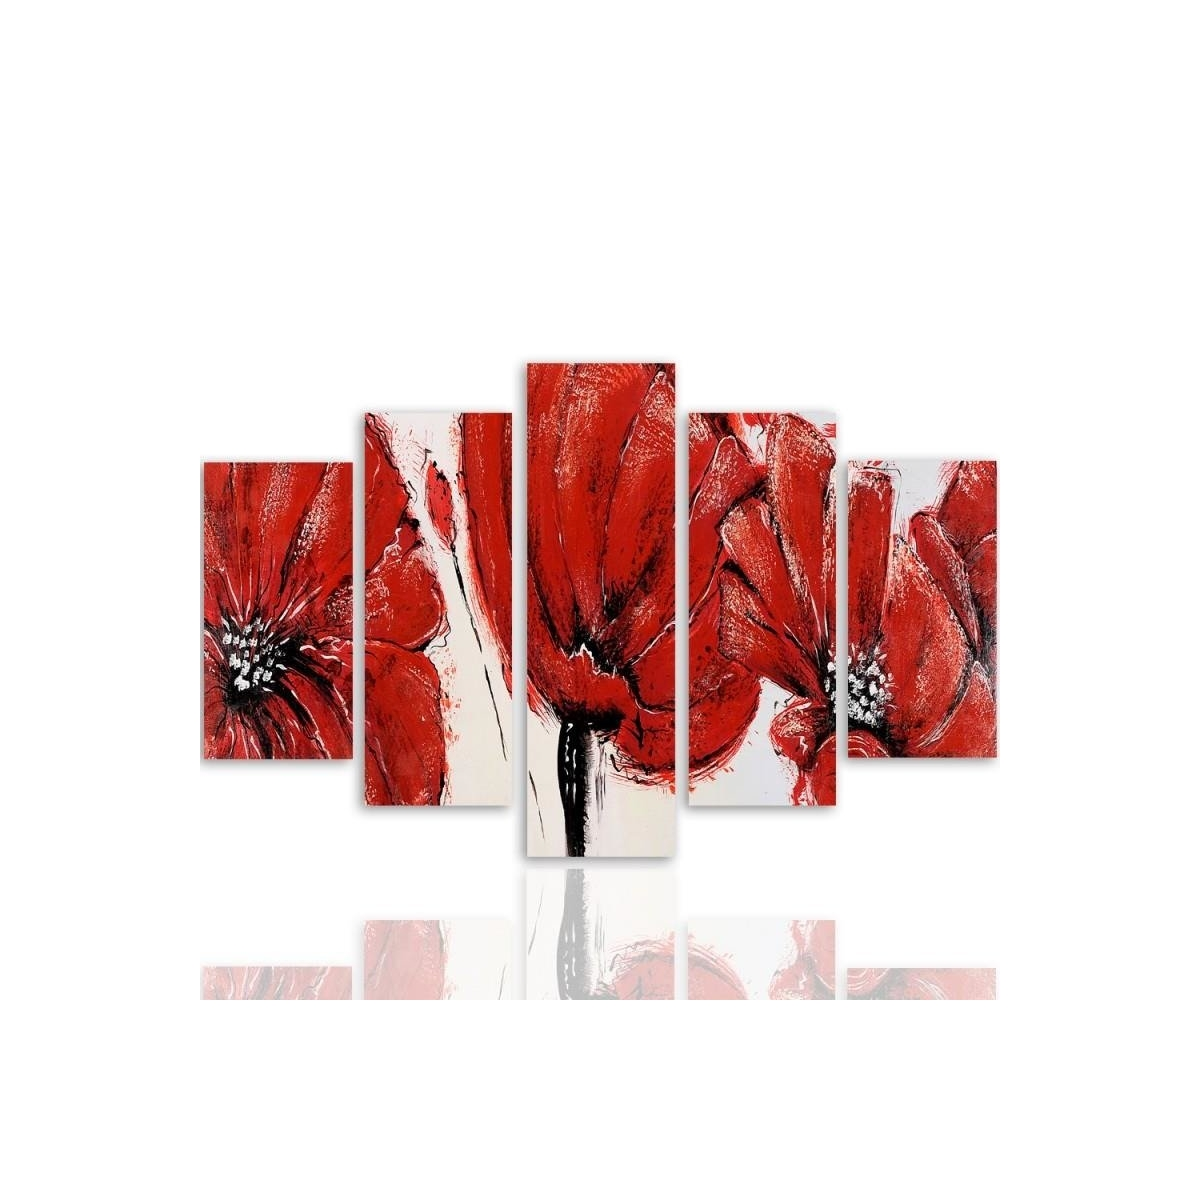 Five Part Picture On Canvas, Pentaptych, Type A, Red Flowers 100x150